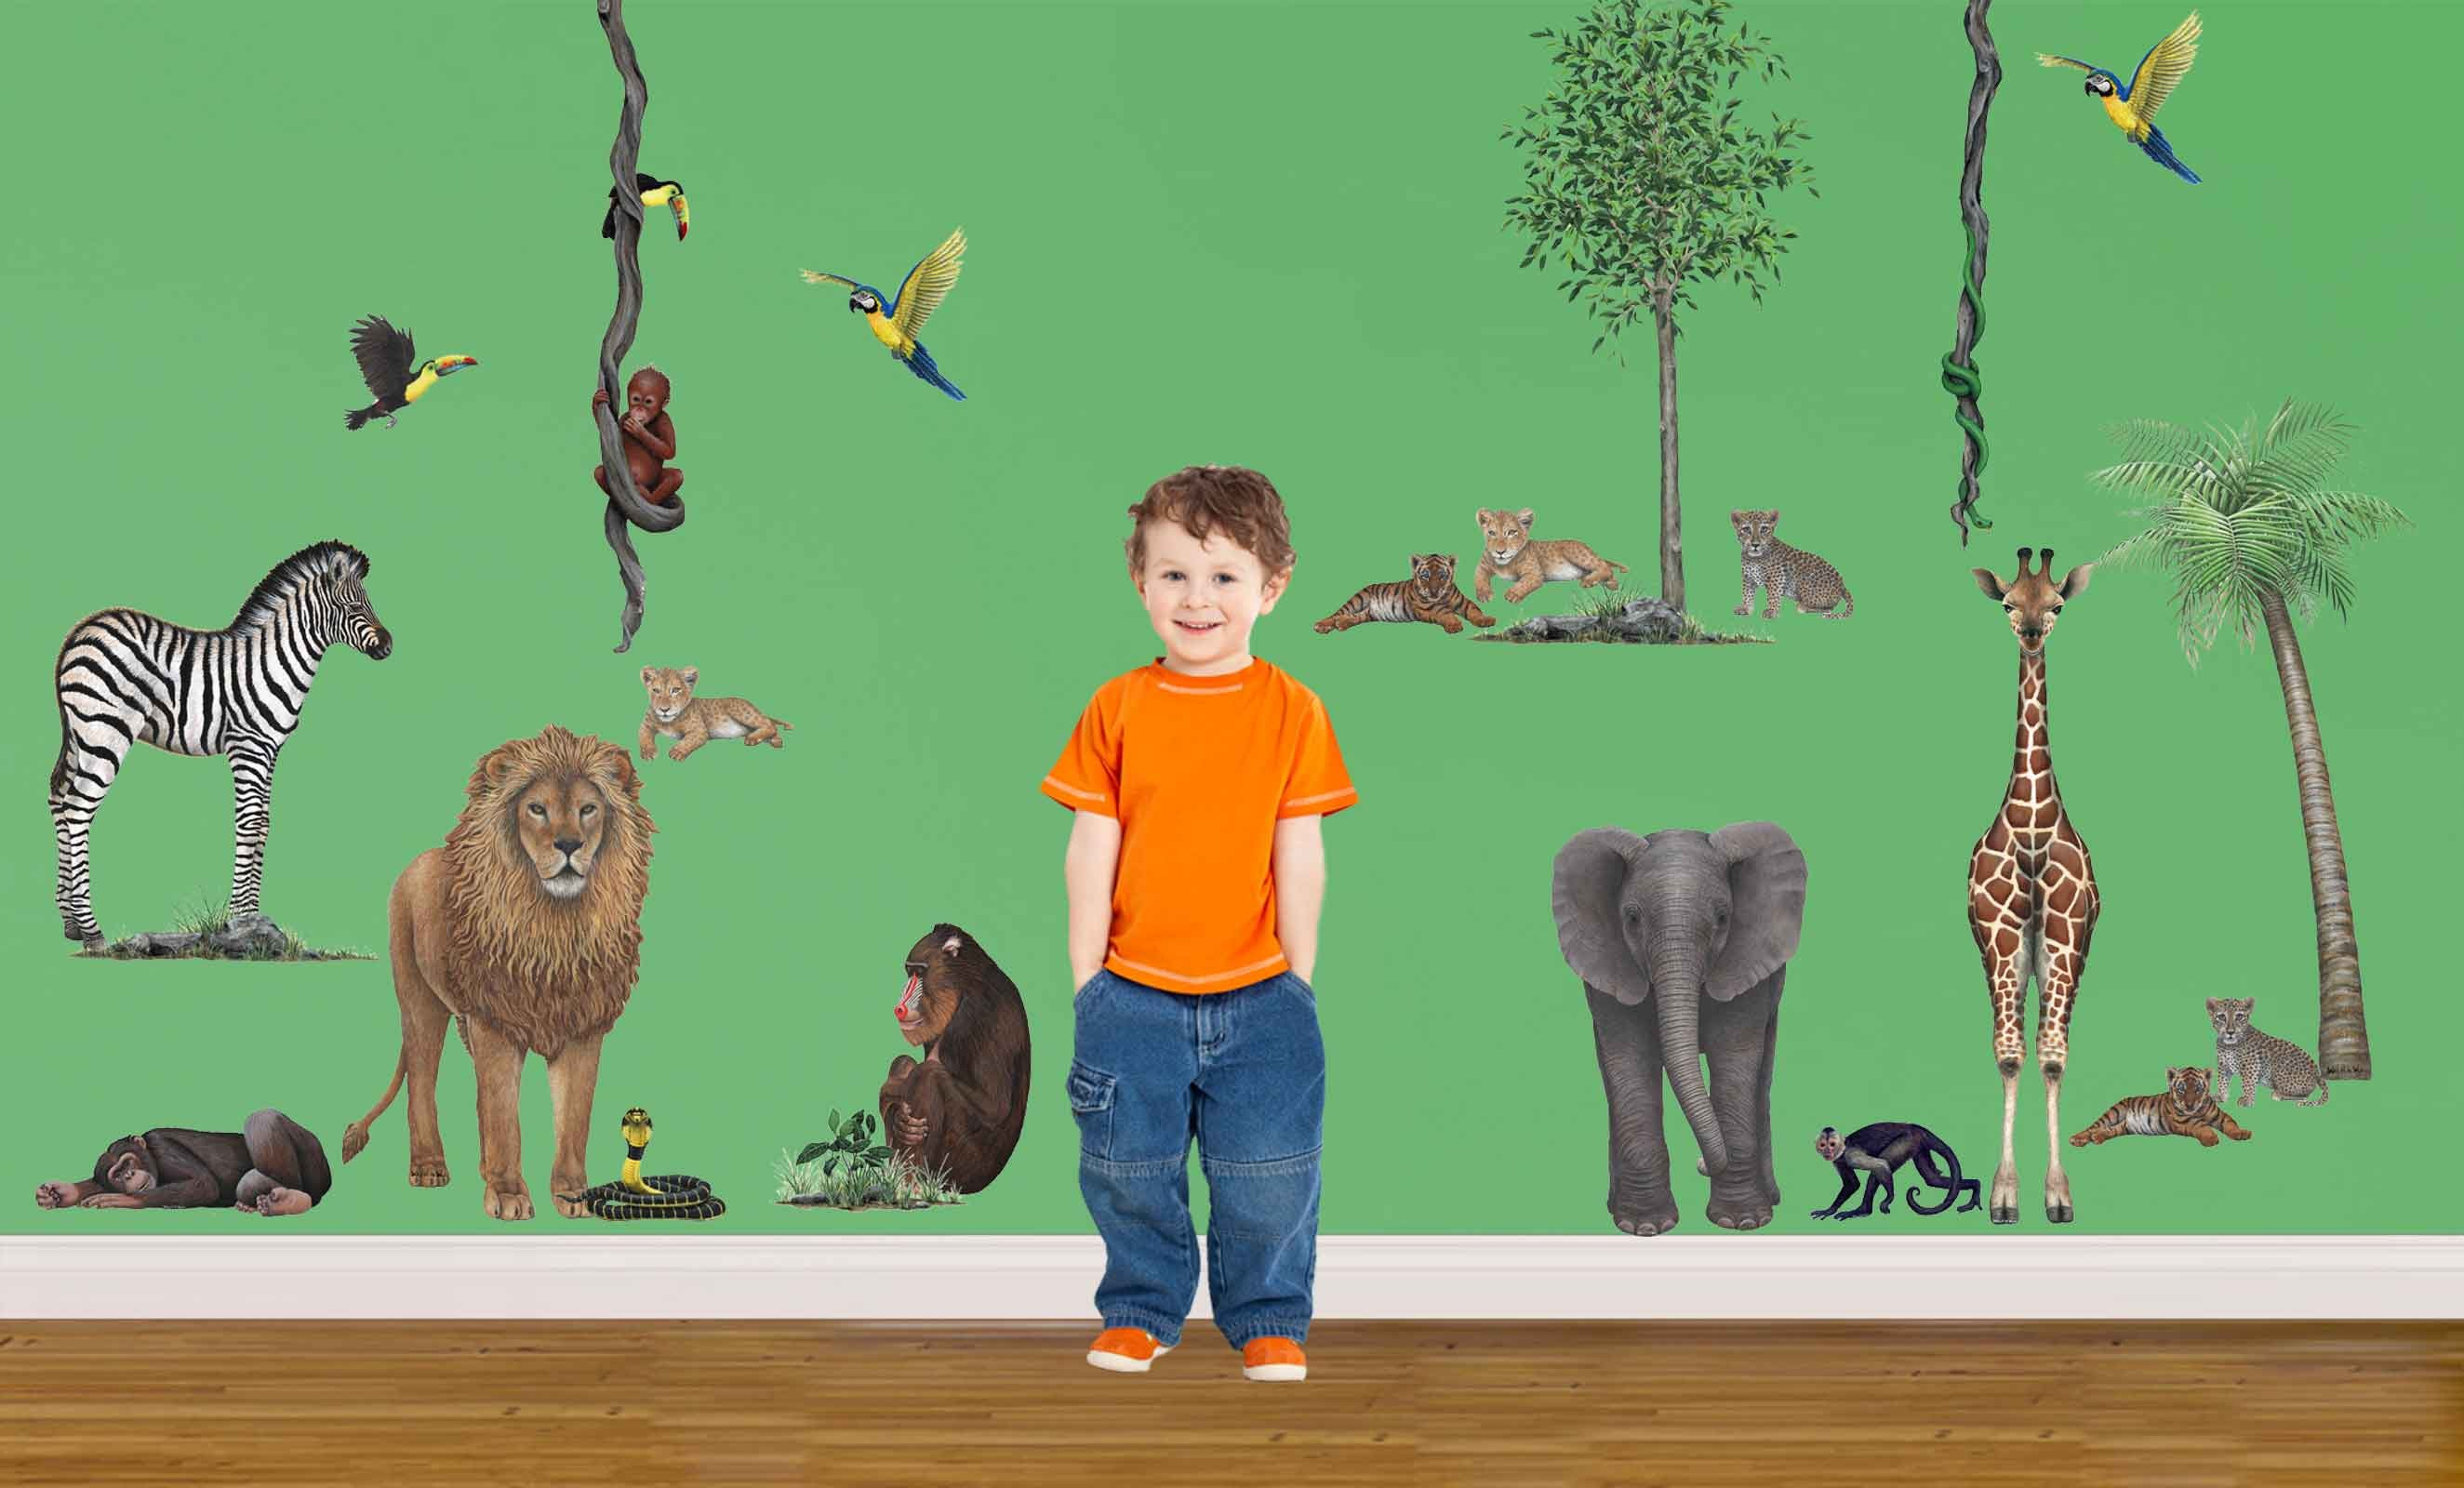 jungle animal wall stickers walltastic jungle themed wallpaper safari sticker set